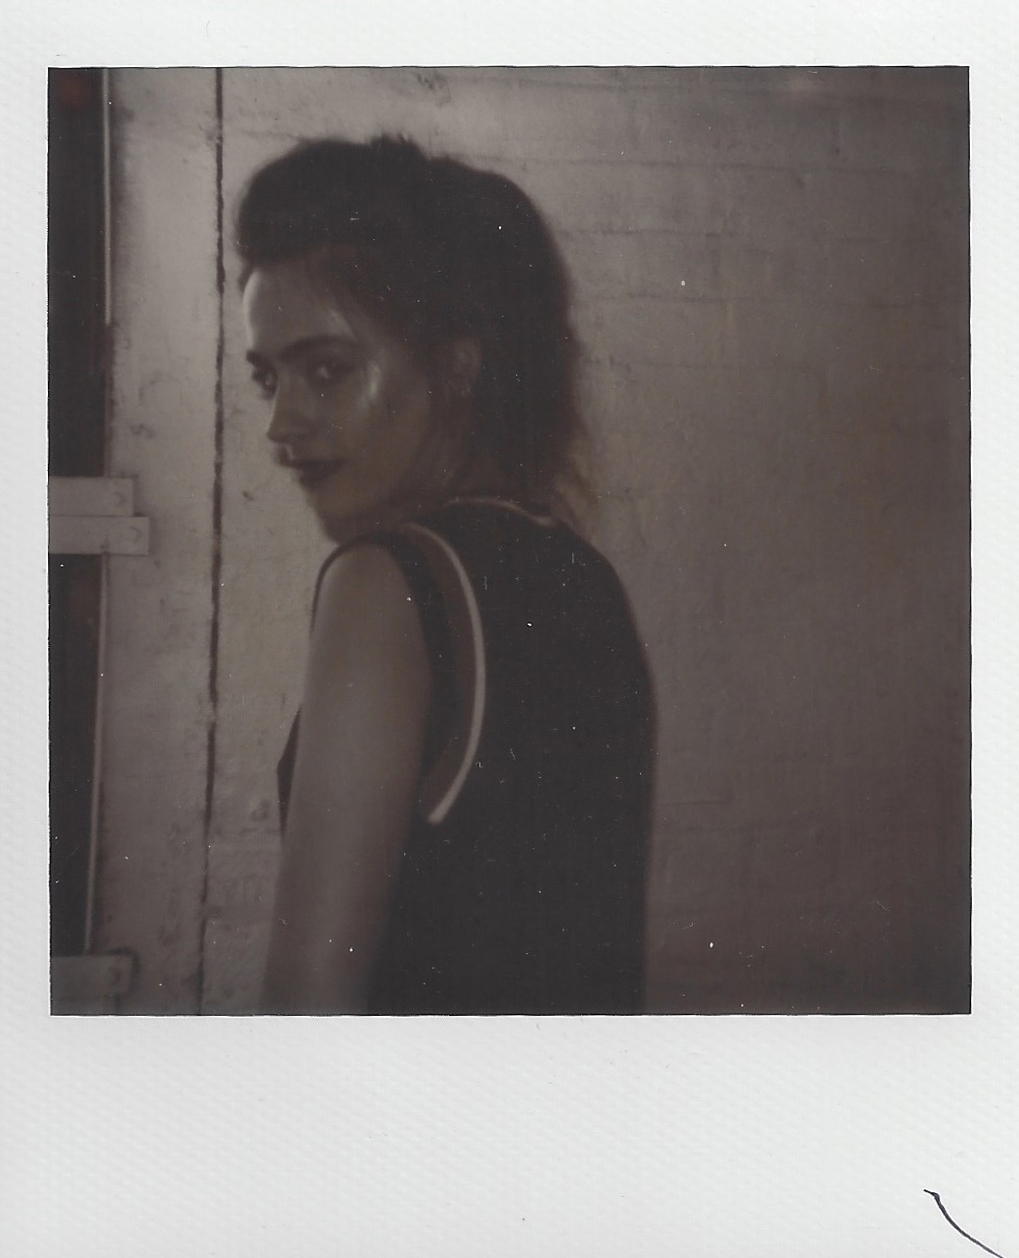 NYC_Fashion_Photographer_Polaroid_Behind_The_Scenes_Photoshoot_Impossible_Film_Camera_IMG_Models_Charlotte_Coquelin_1